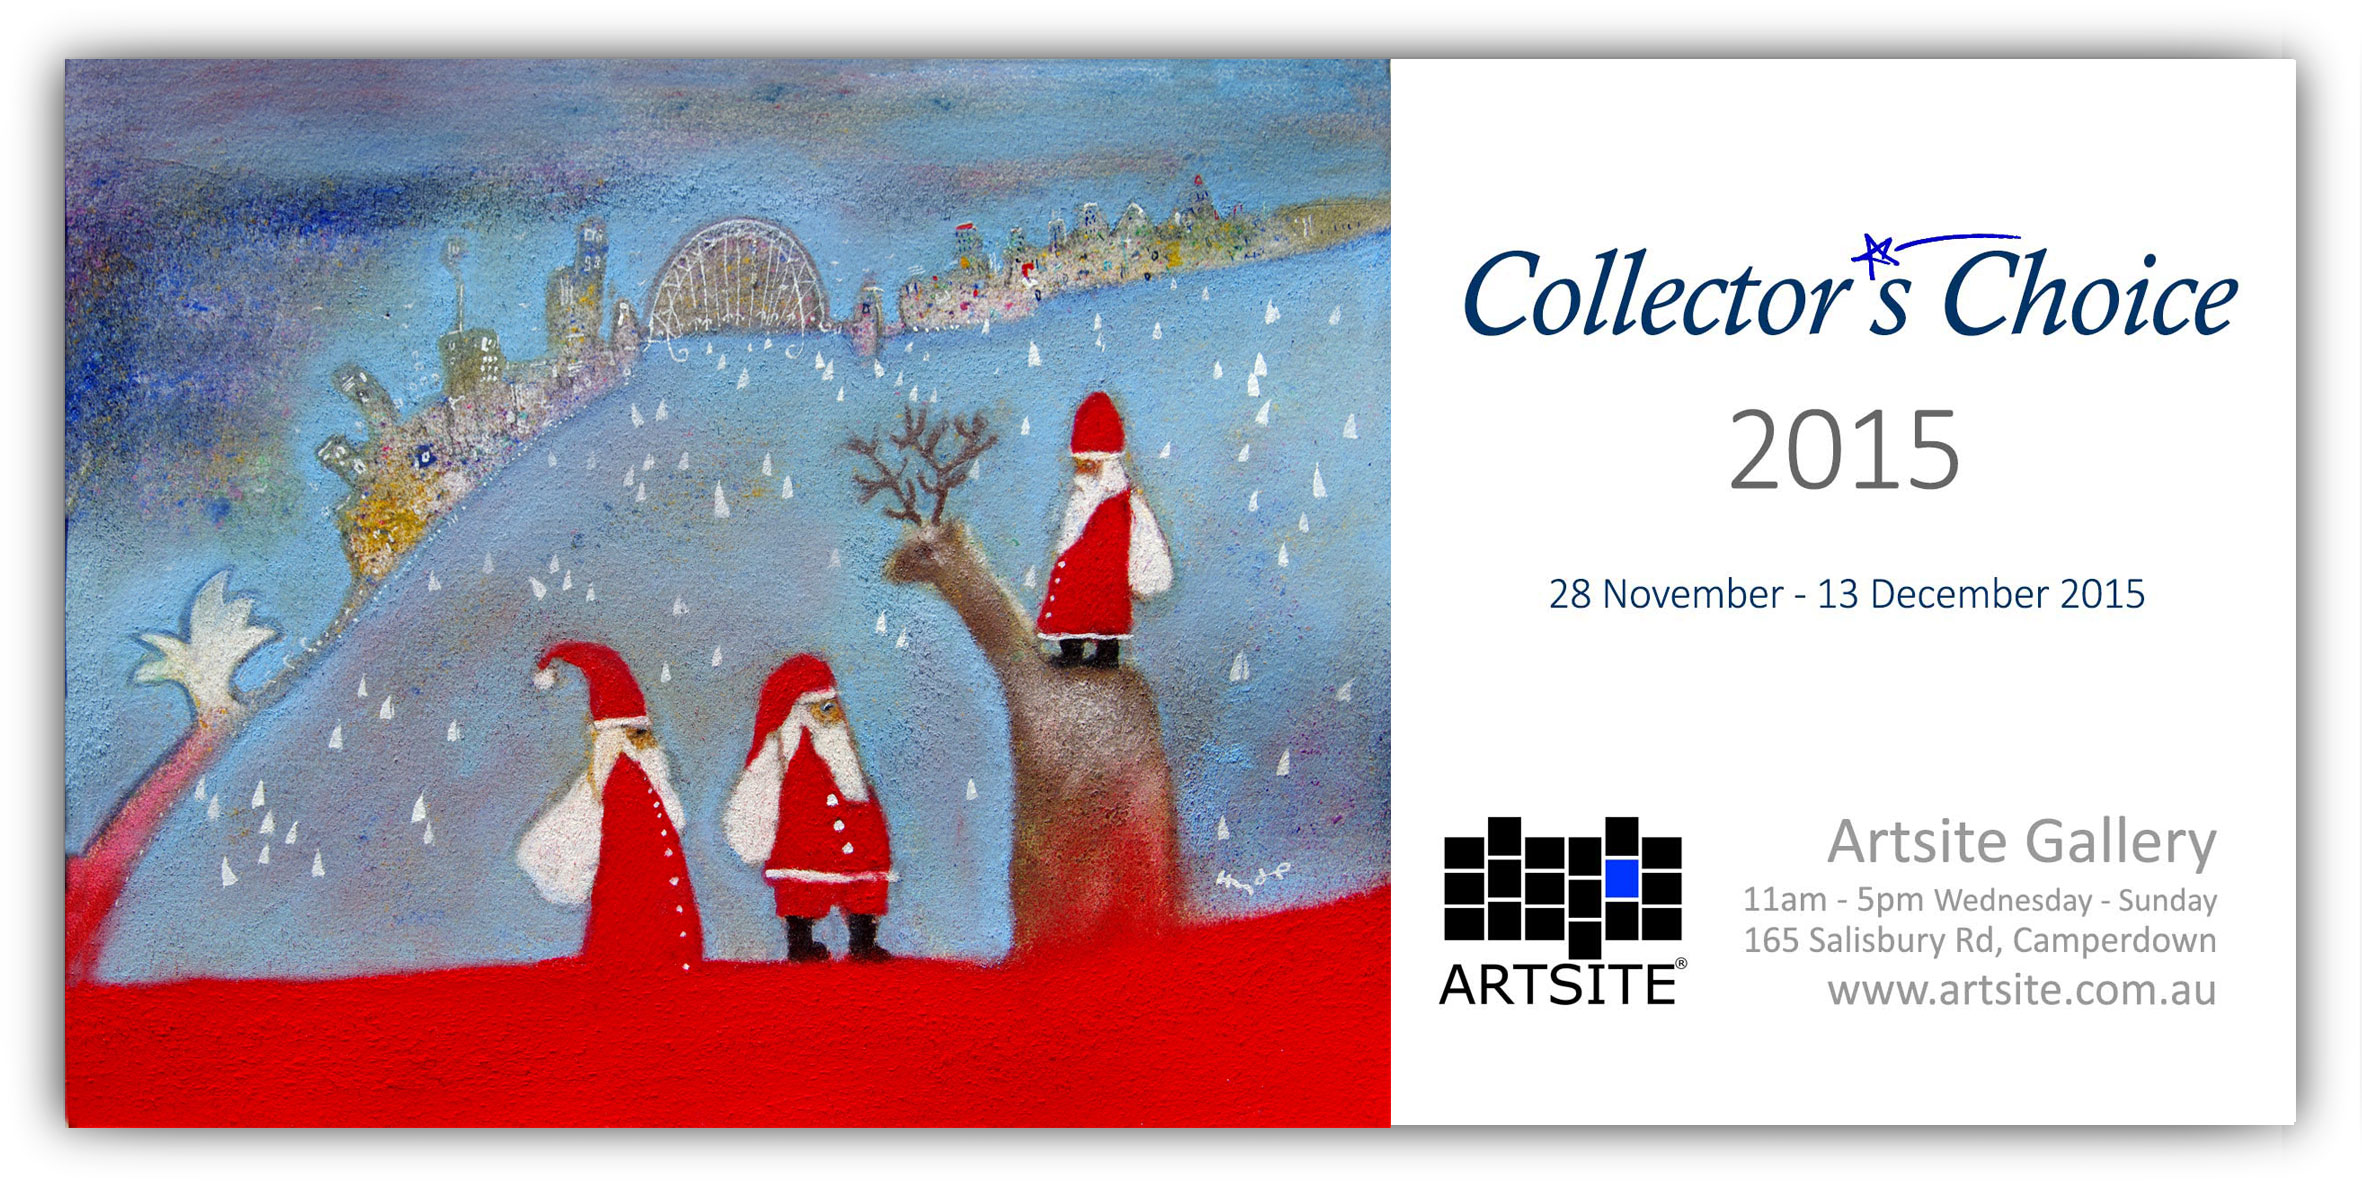 View Exhibition at Artsite Gallery, Sydney: 28 November - 13 December 2015. Collectors Choice 2015